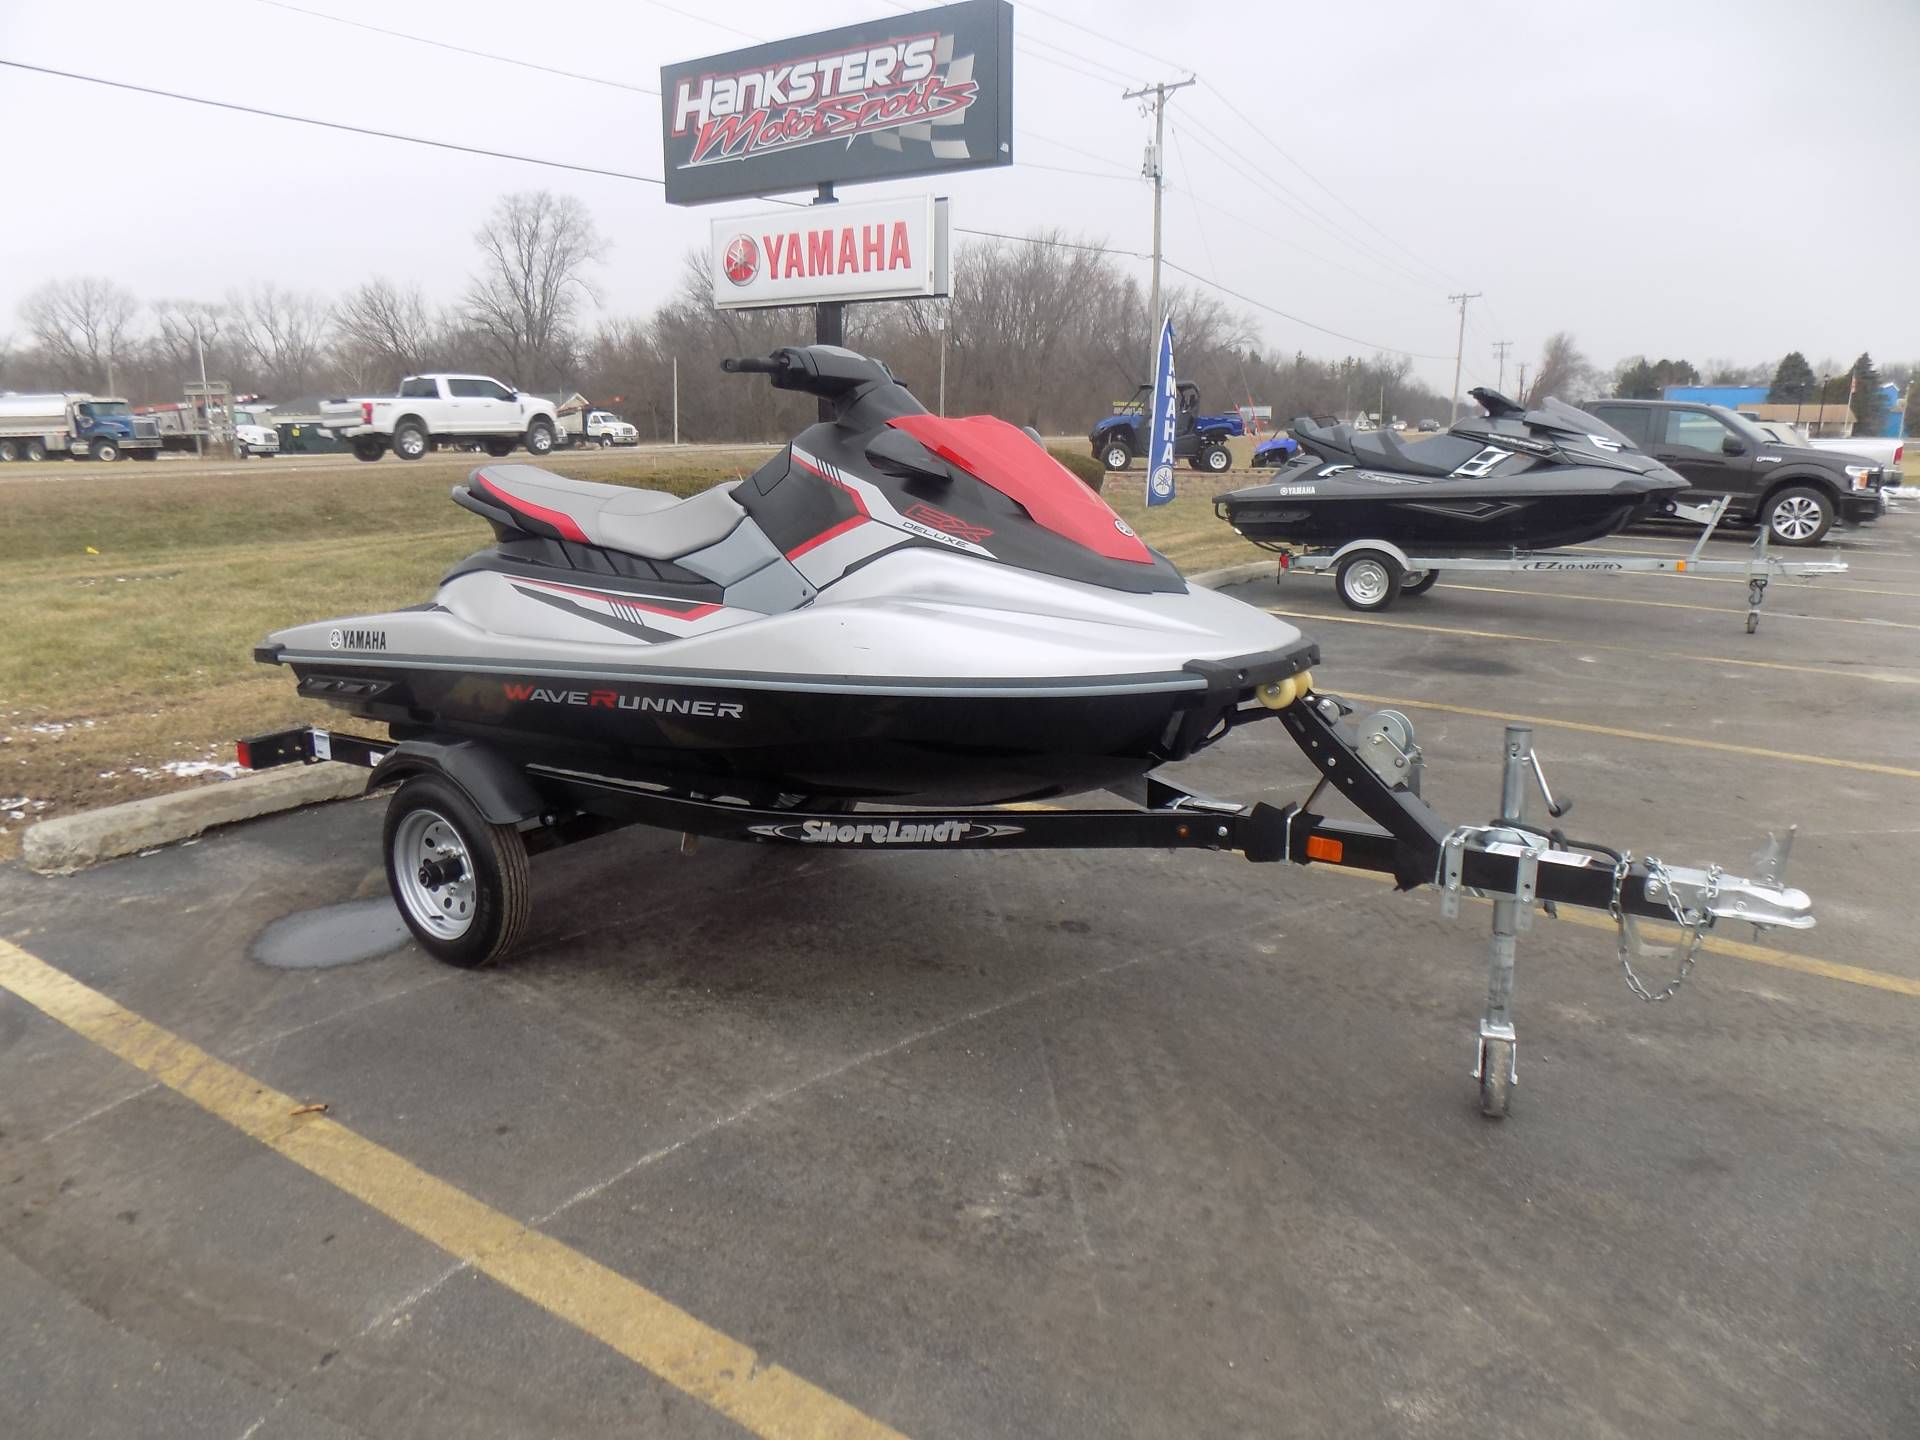 2017 Yamaha EX Deluxe for sale 49998